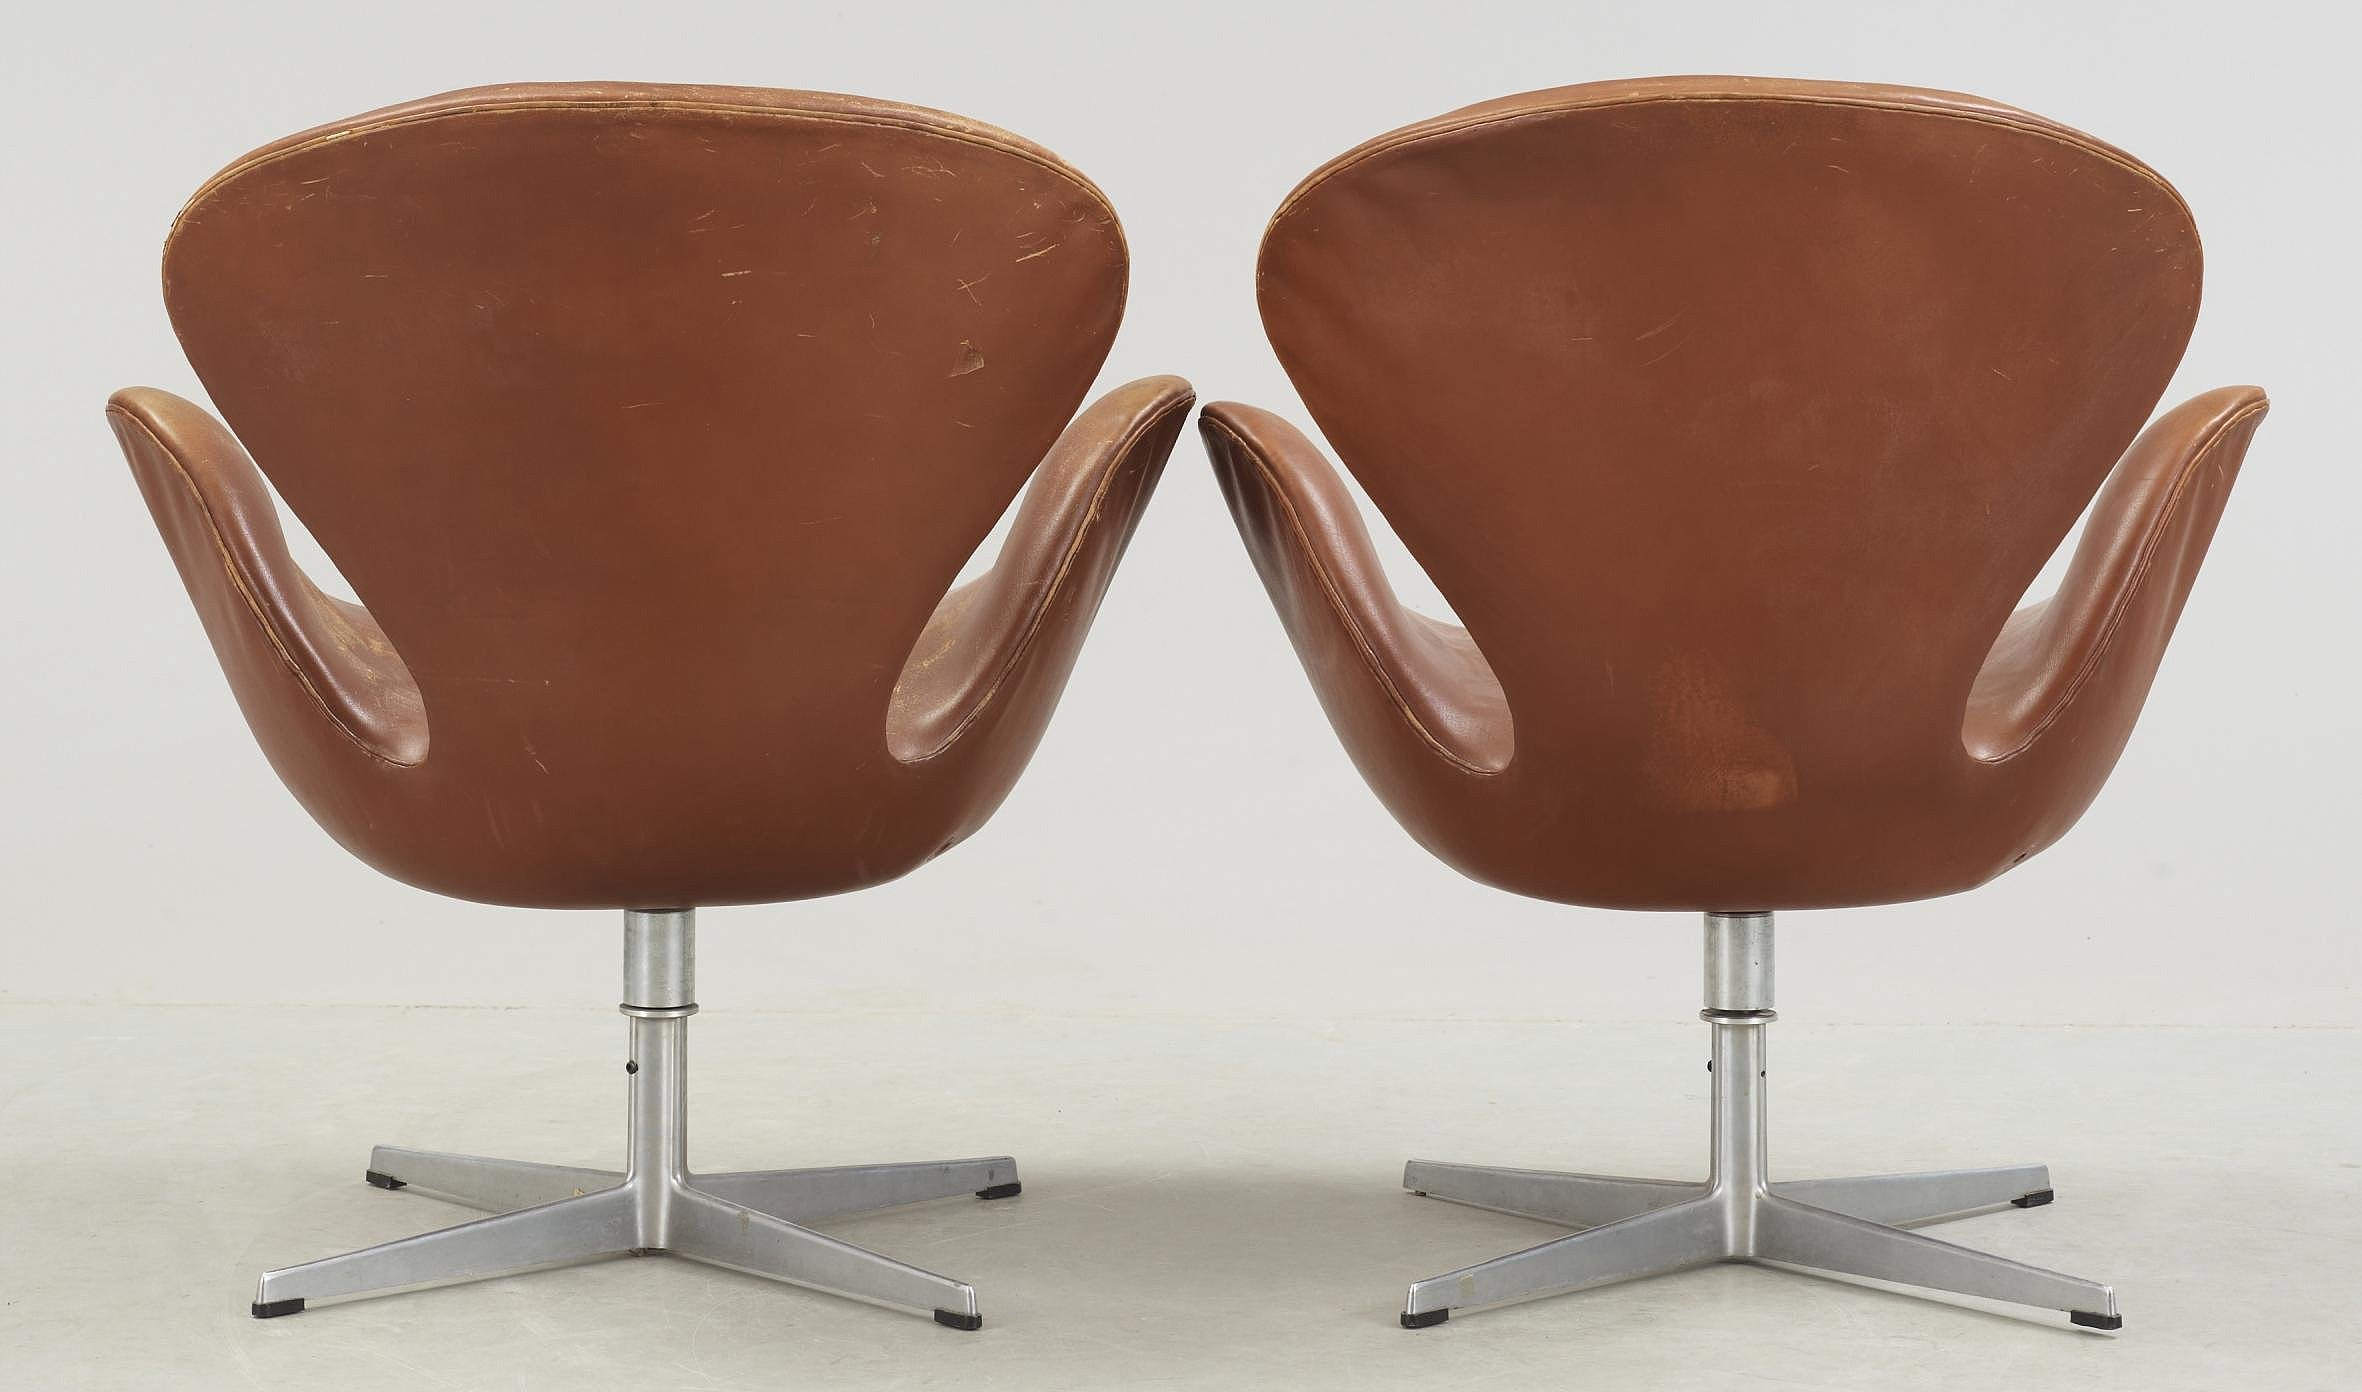 Pleasing A Pair Of Arne Jacobsen Brown Leather Swan Chairs Fritz Evergreenethics Interior Chair Design Evergreenethicsorg